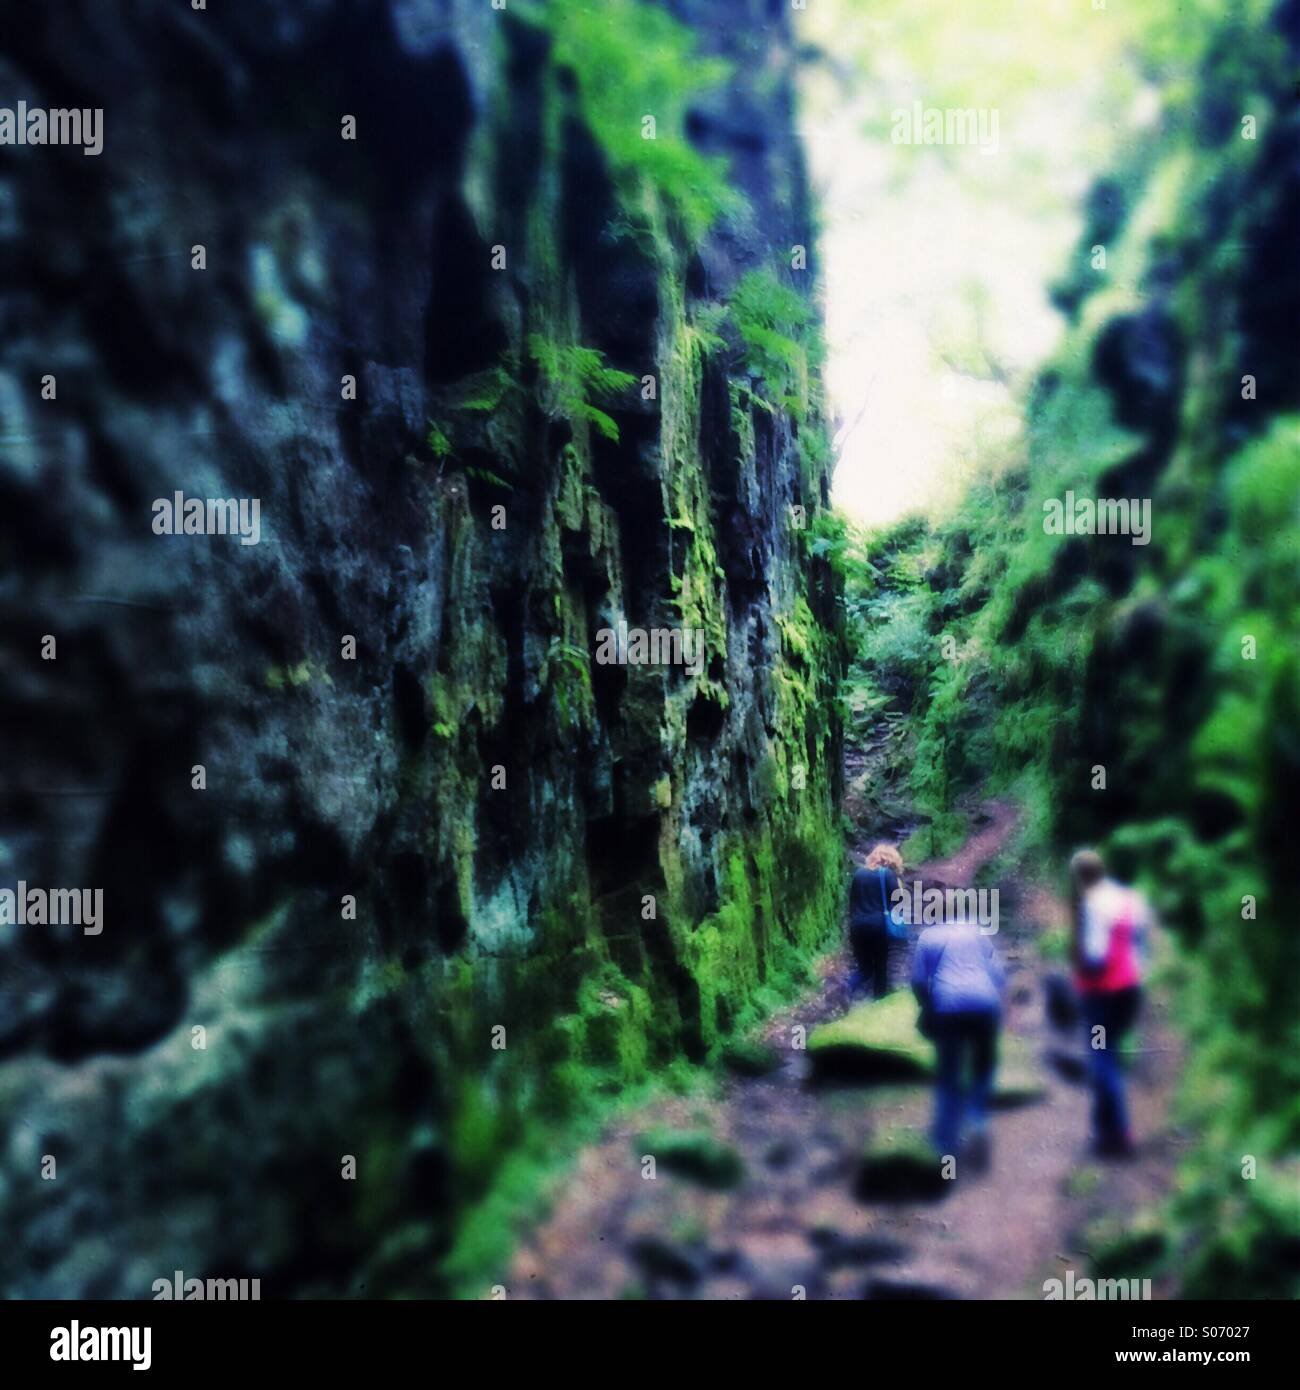 Three people in a green rocky gorge - Stock Image